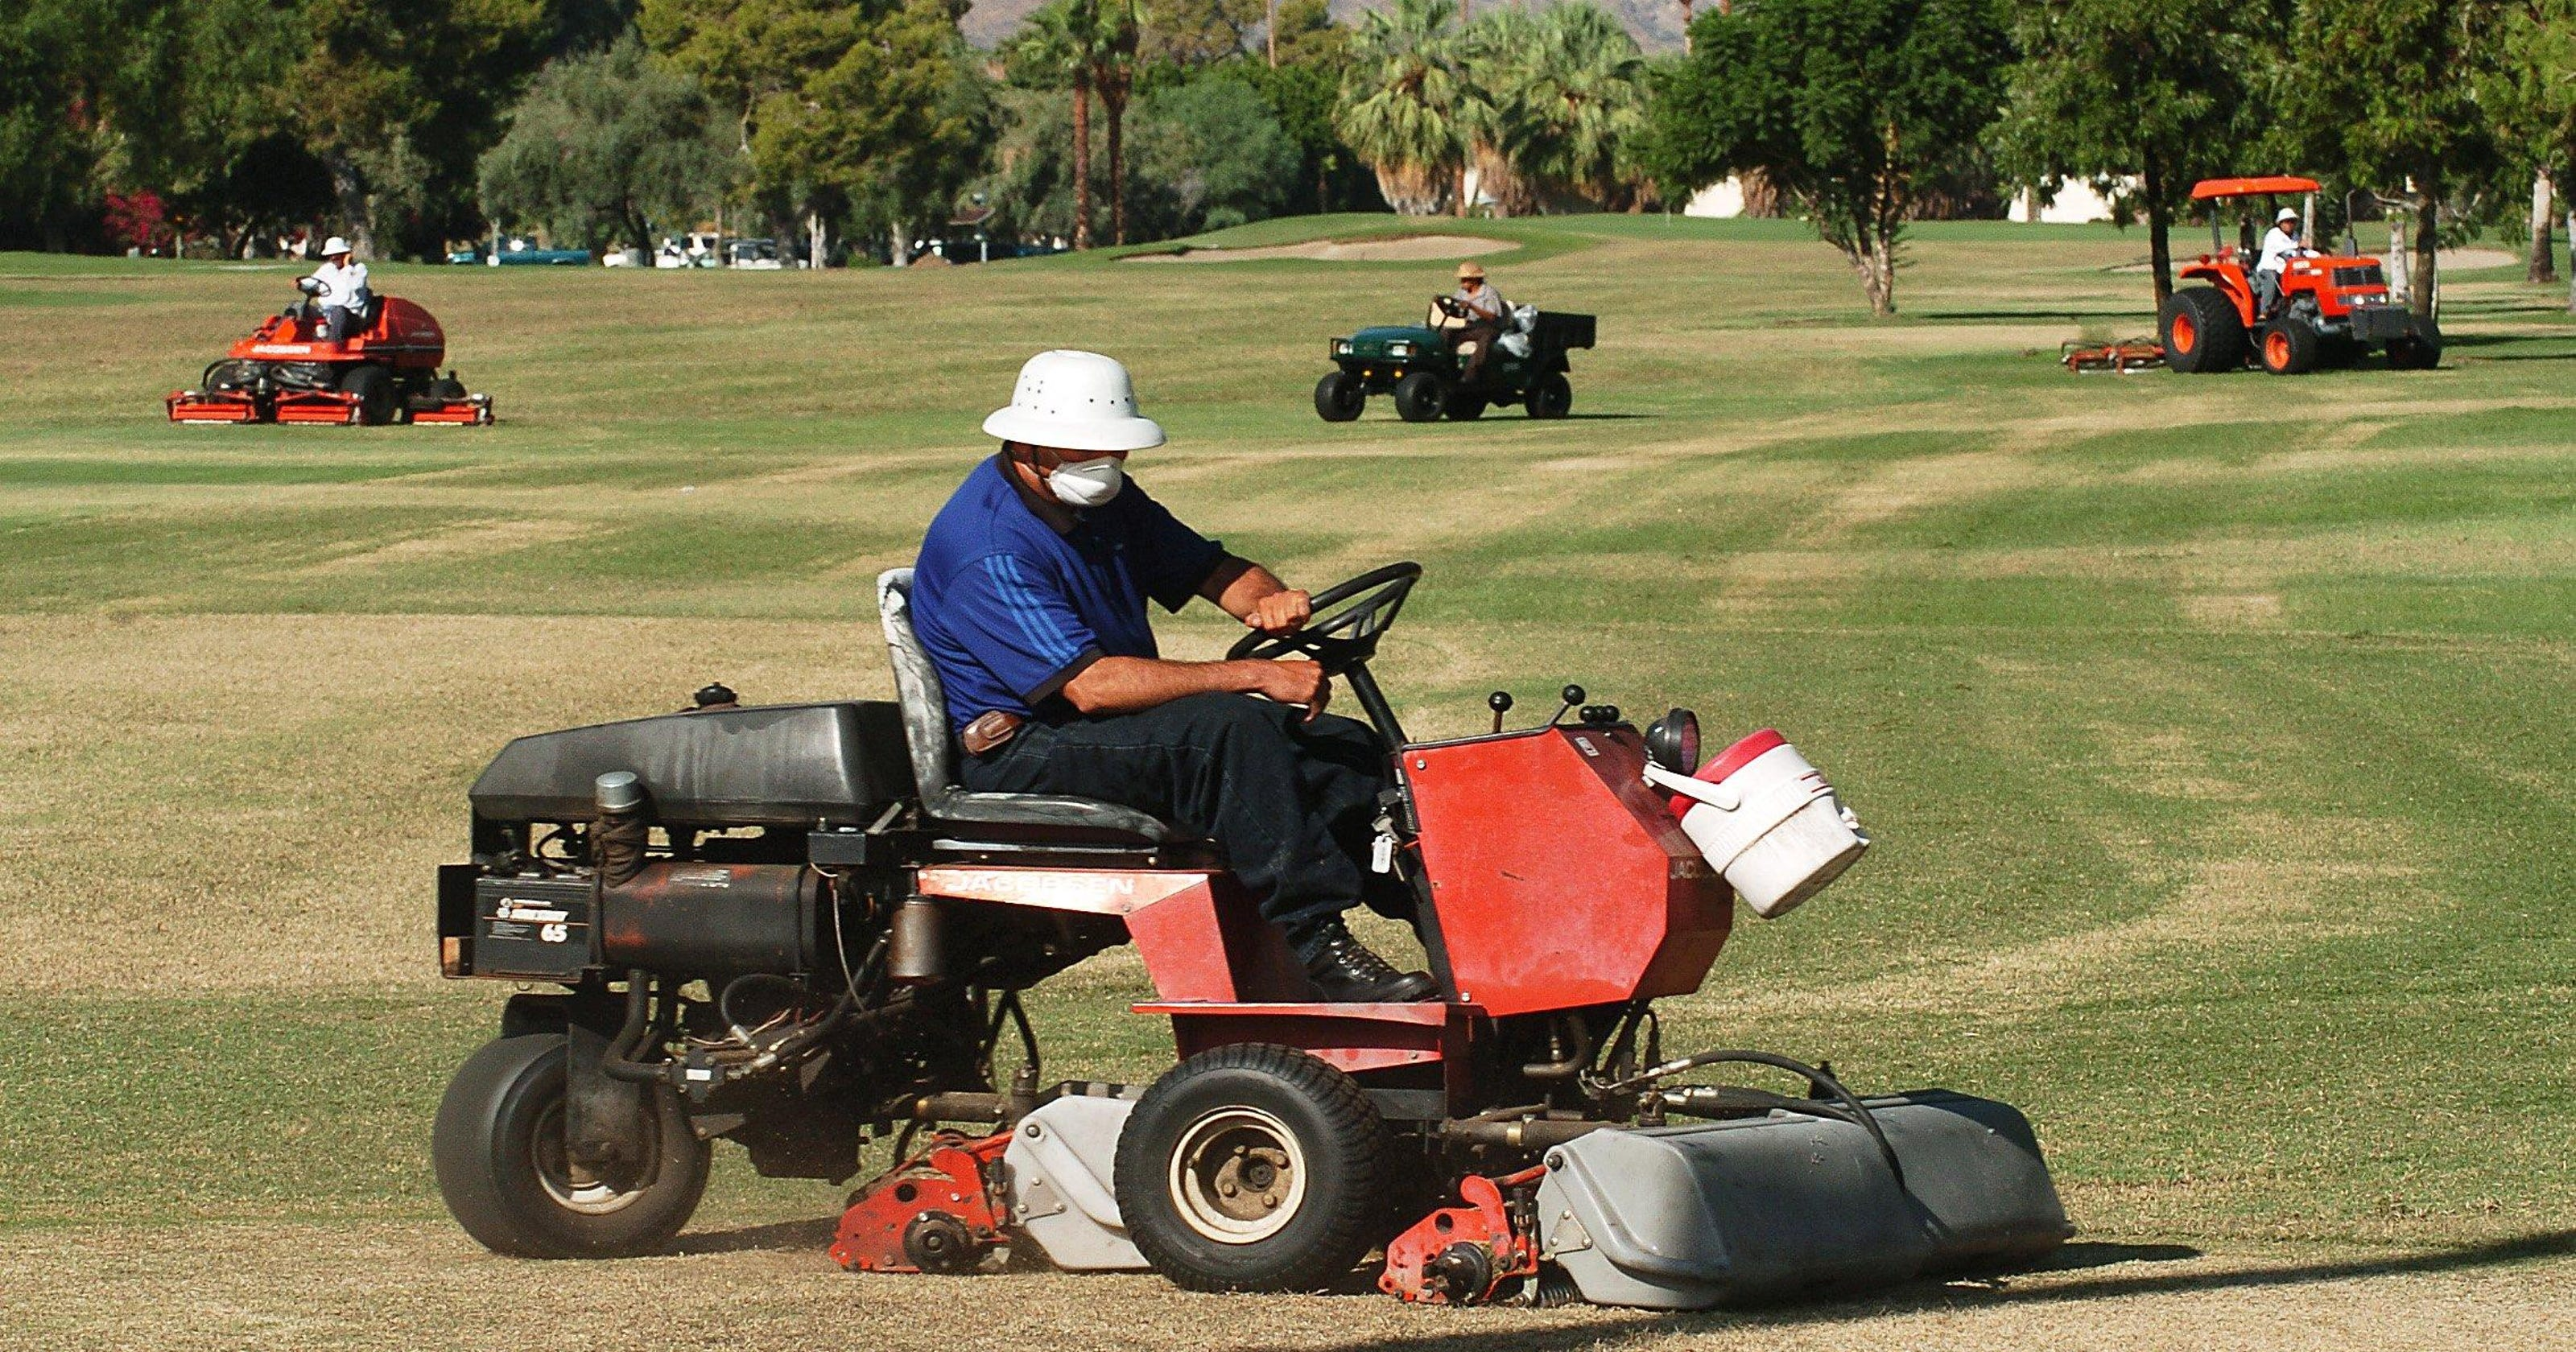 With fresh gr comes the dreaded cart path only rule at desert ... on sidewalk width, driveway width, golf cart with spotlight, golf cart alignment, golf cart injuries, golf cart wheels, golf cart paver, golf cart striping, golf cart themes, golf cart safety, golf cart trails,